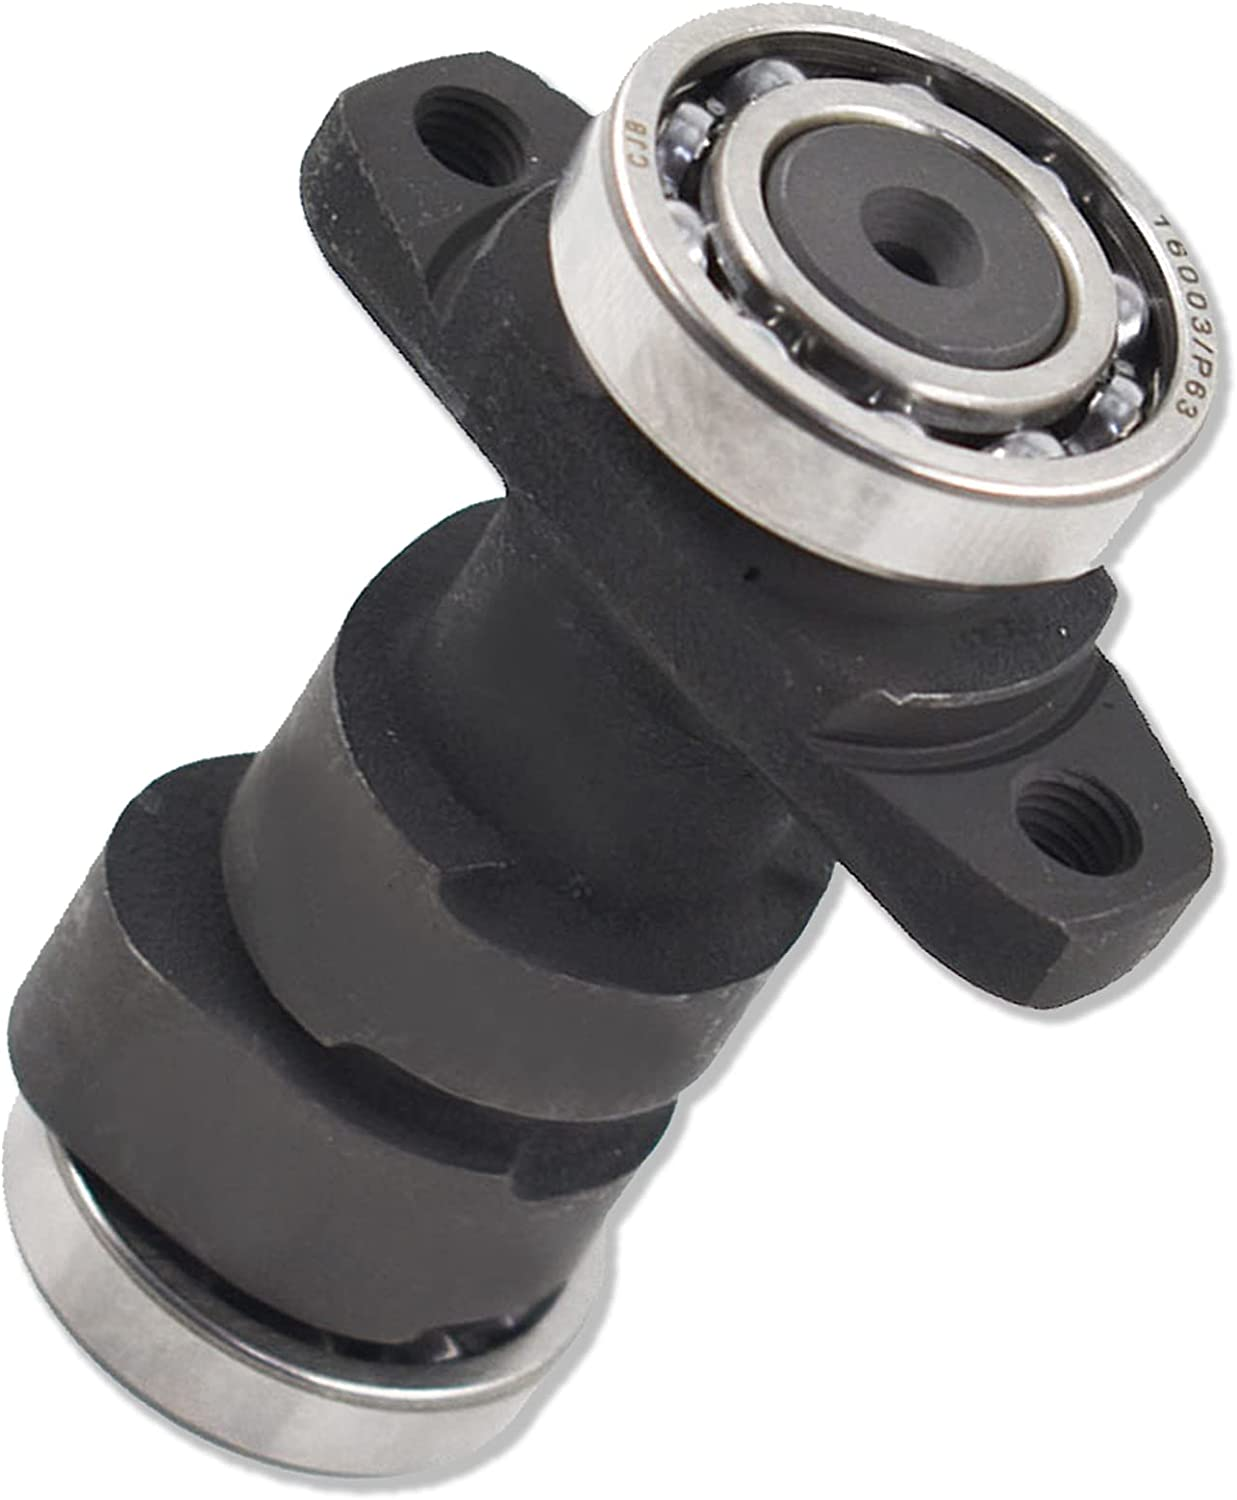 Camshaft Fit for ATV TRX300EX Sportrax 300 x 4 2 67% OFF of fixed price 1993 1994 1995 Now free shipping